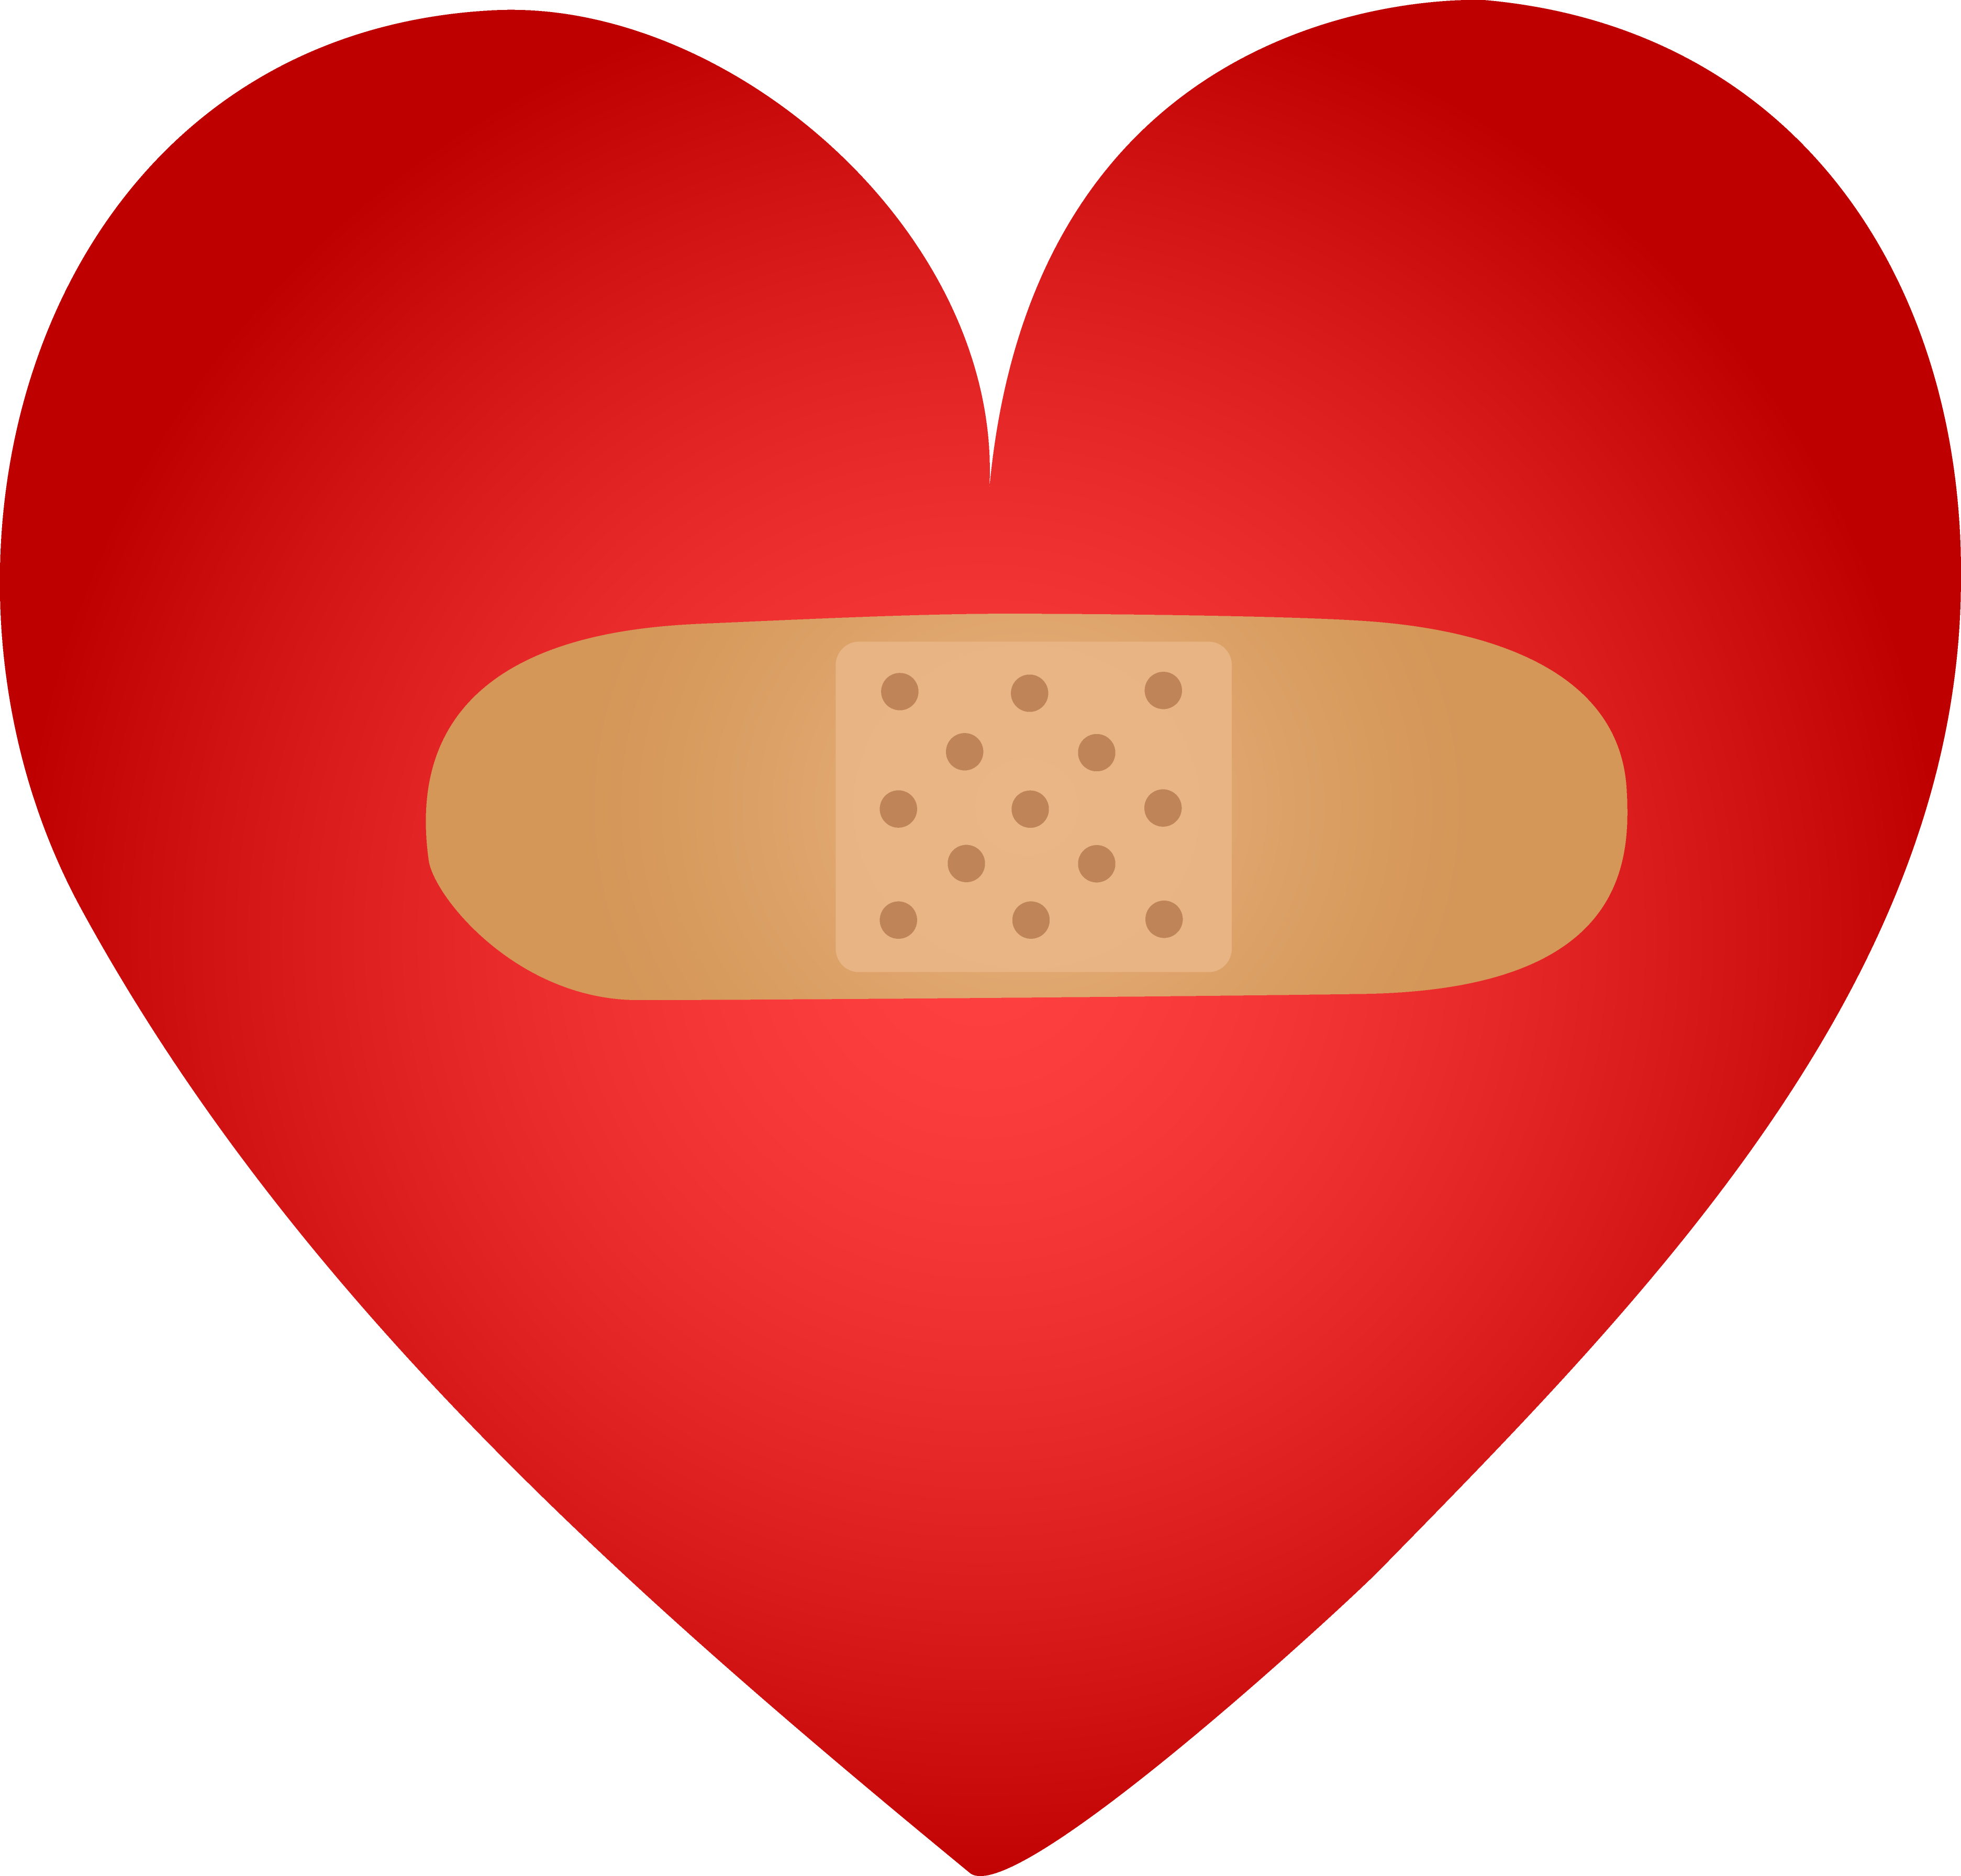 Heart band logo png. With aid clipart